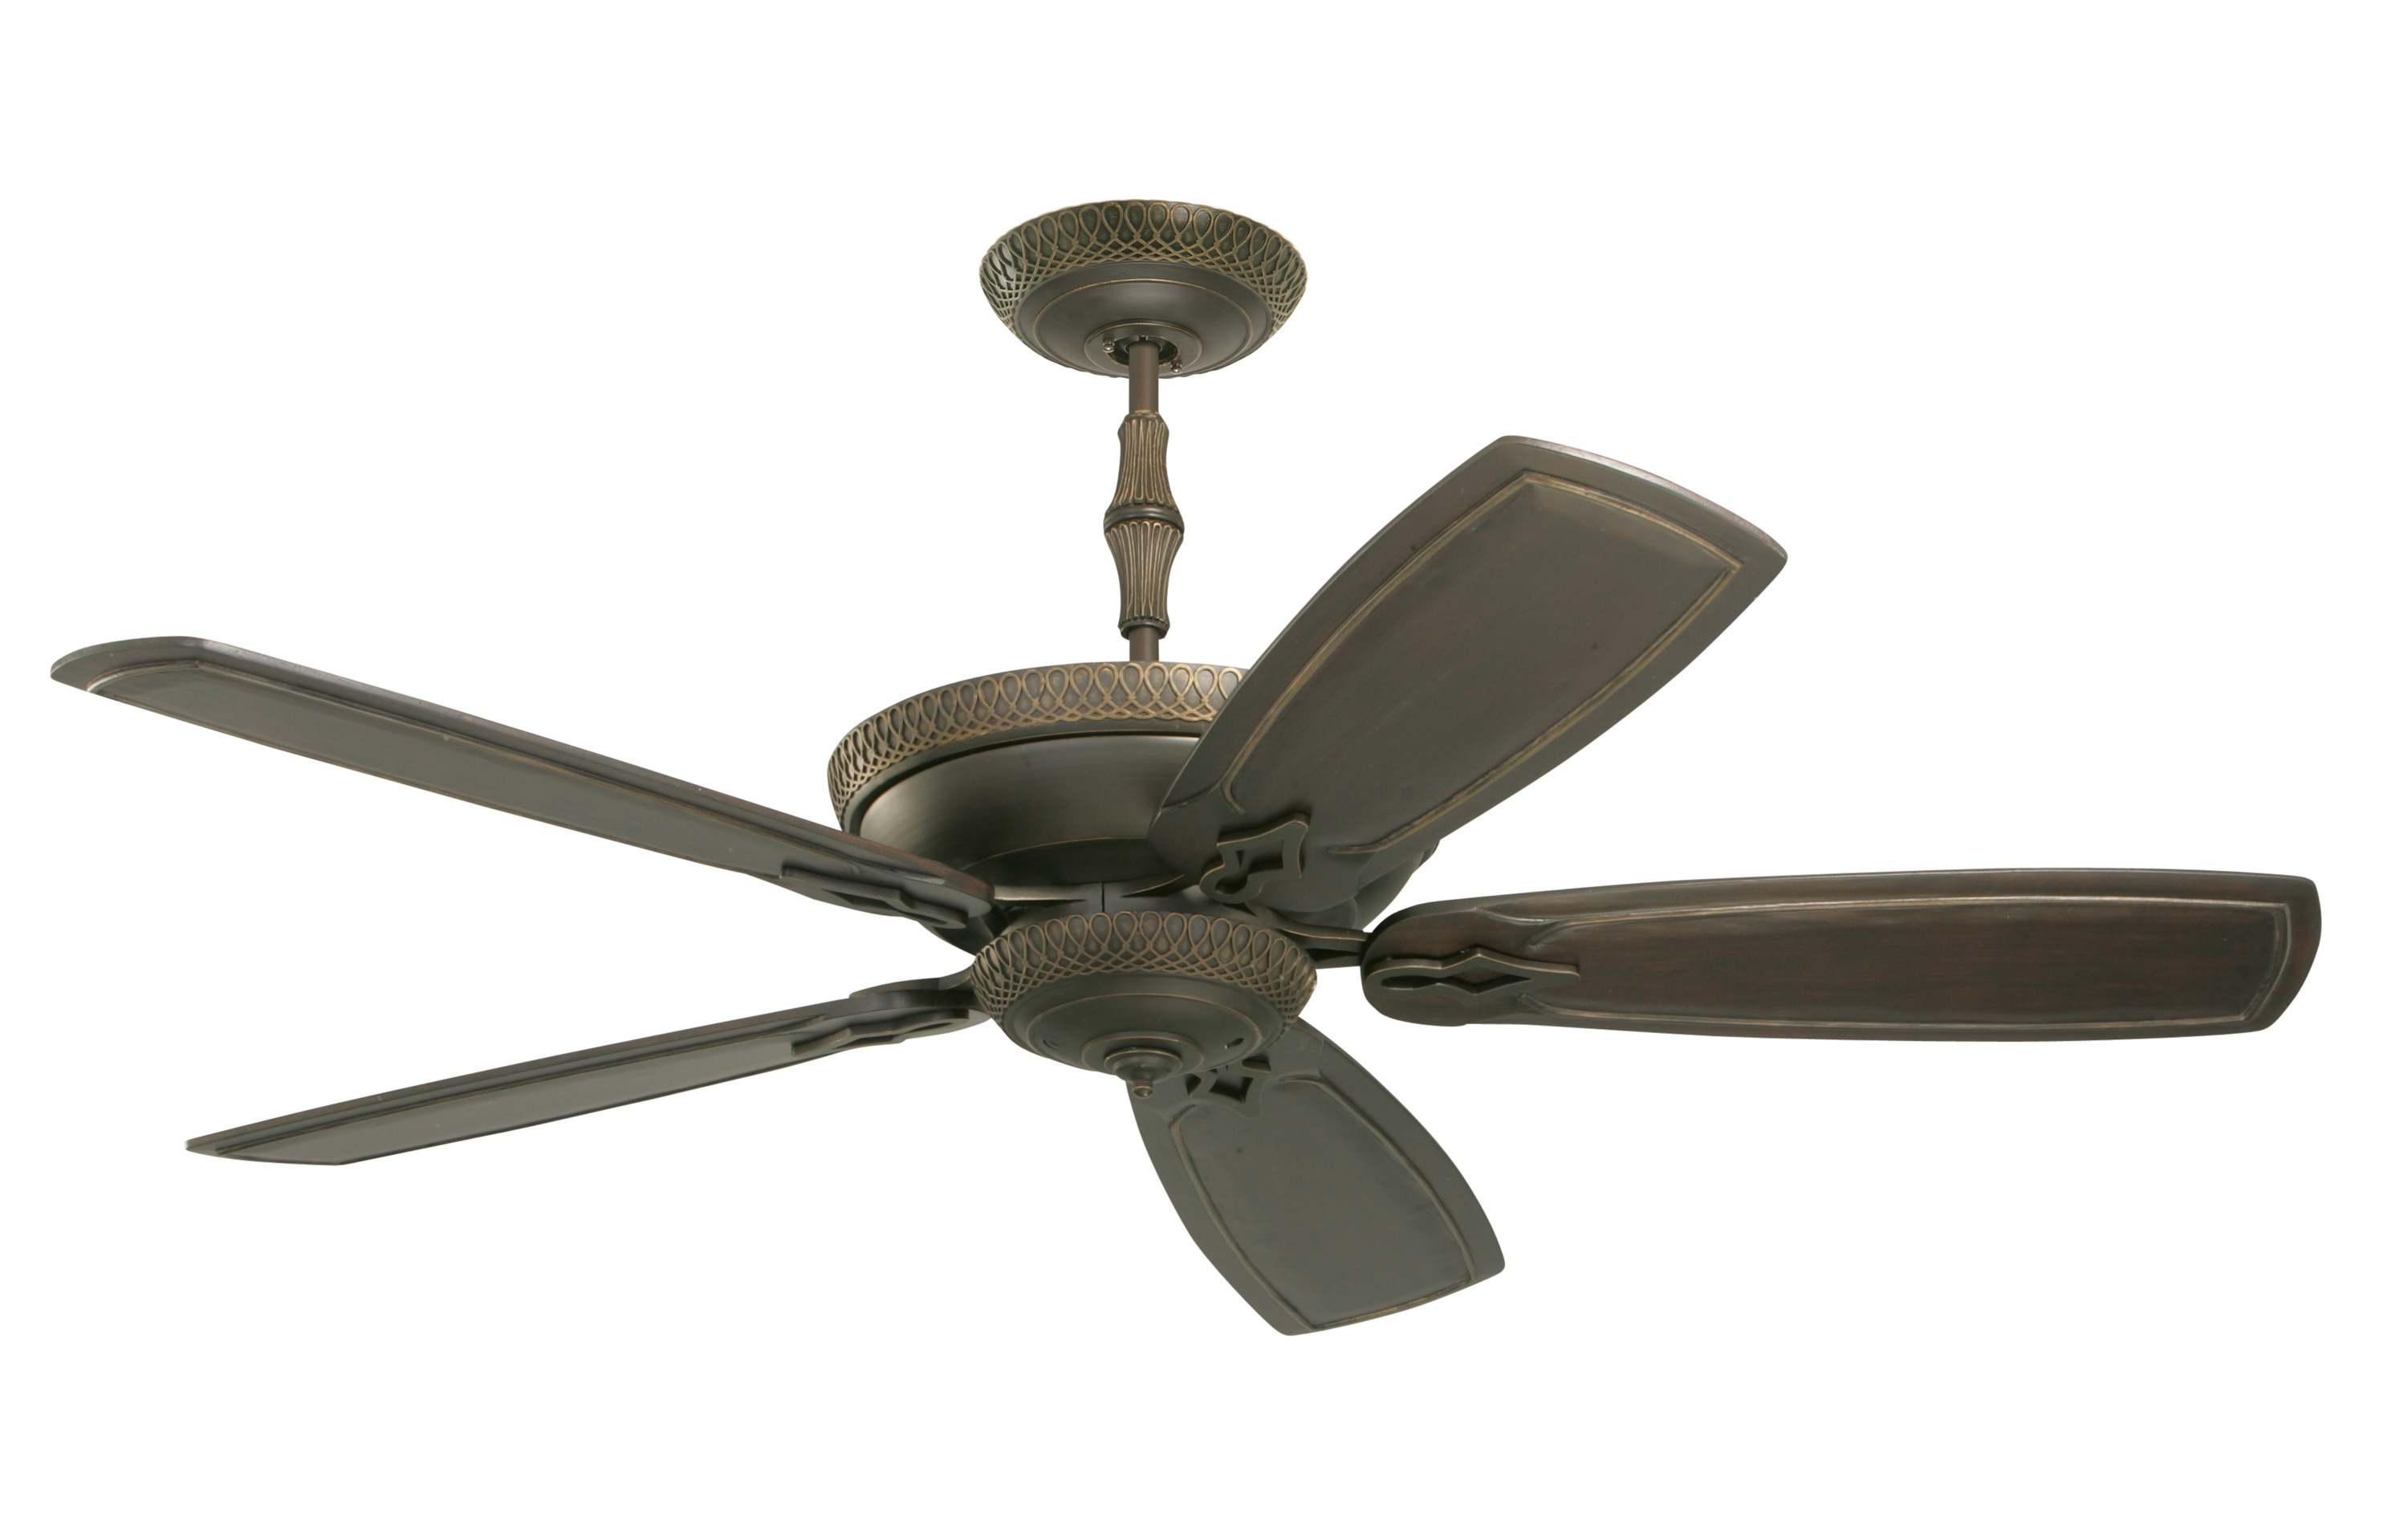 cfm ceiling optional emerson shown bronze with image glass croix double magnifying rubbed fans oil blades fan hand carved finish in capitol paddle inch st item walnut